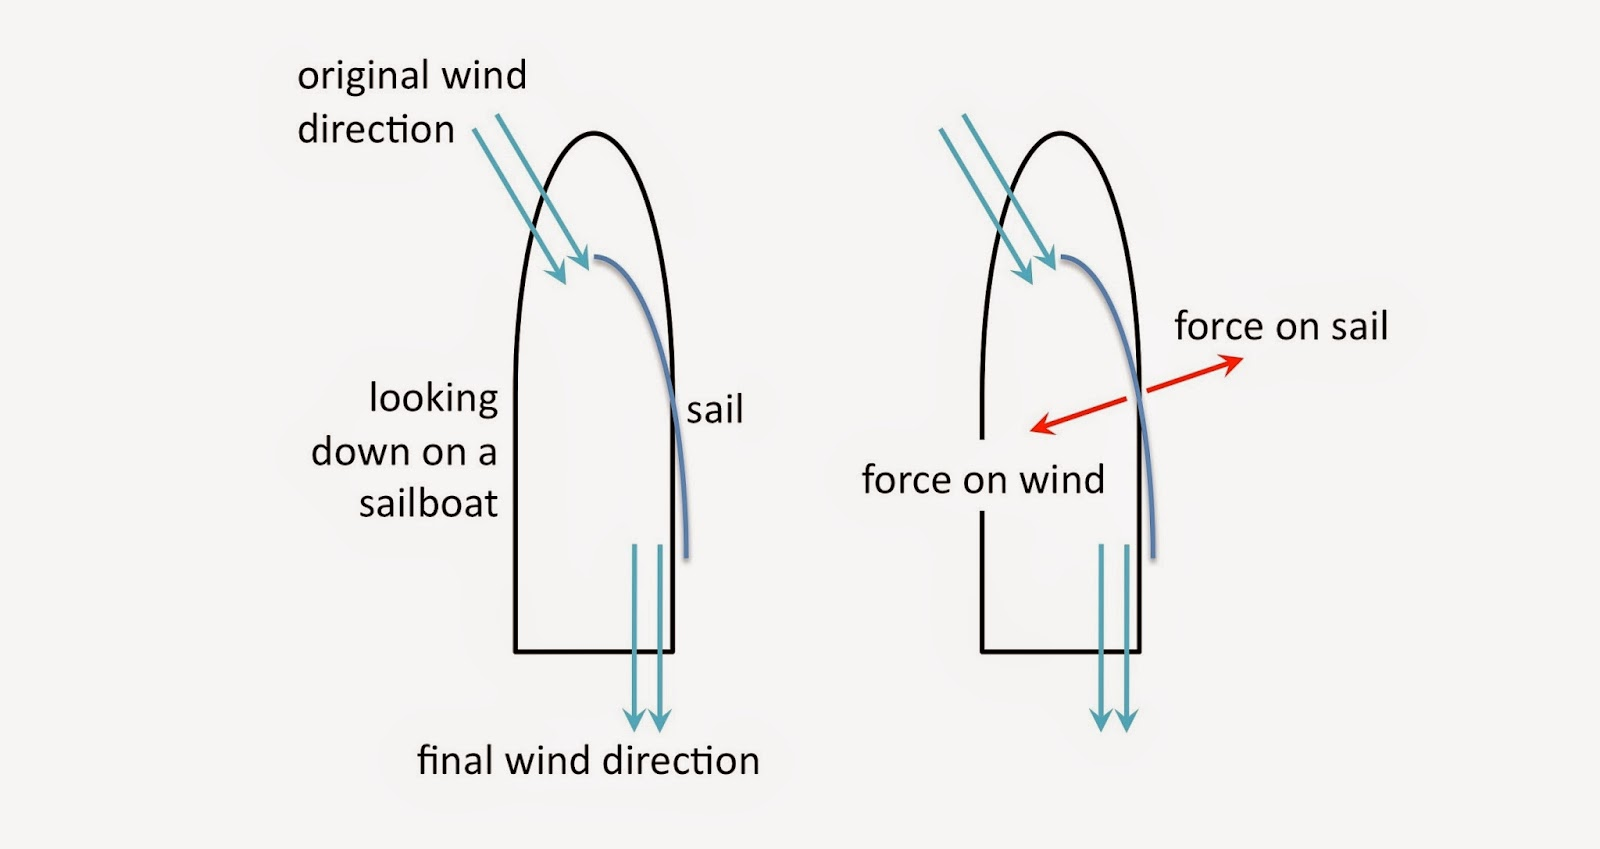 Physics Buzz The Of Sailing How Does A Sailboat Move Upwind Free Body Diagrams For Shock Wave Would Look Likethese Looking Down On Showing Equal And Opposite Forces Wind Sail Credit Tamela Maciel